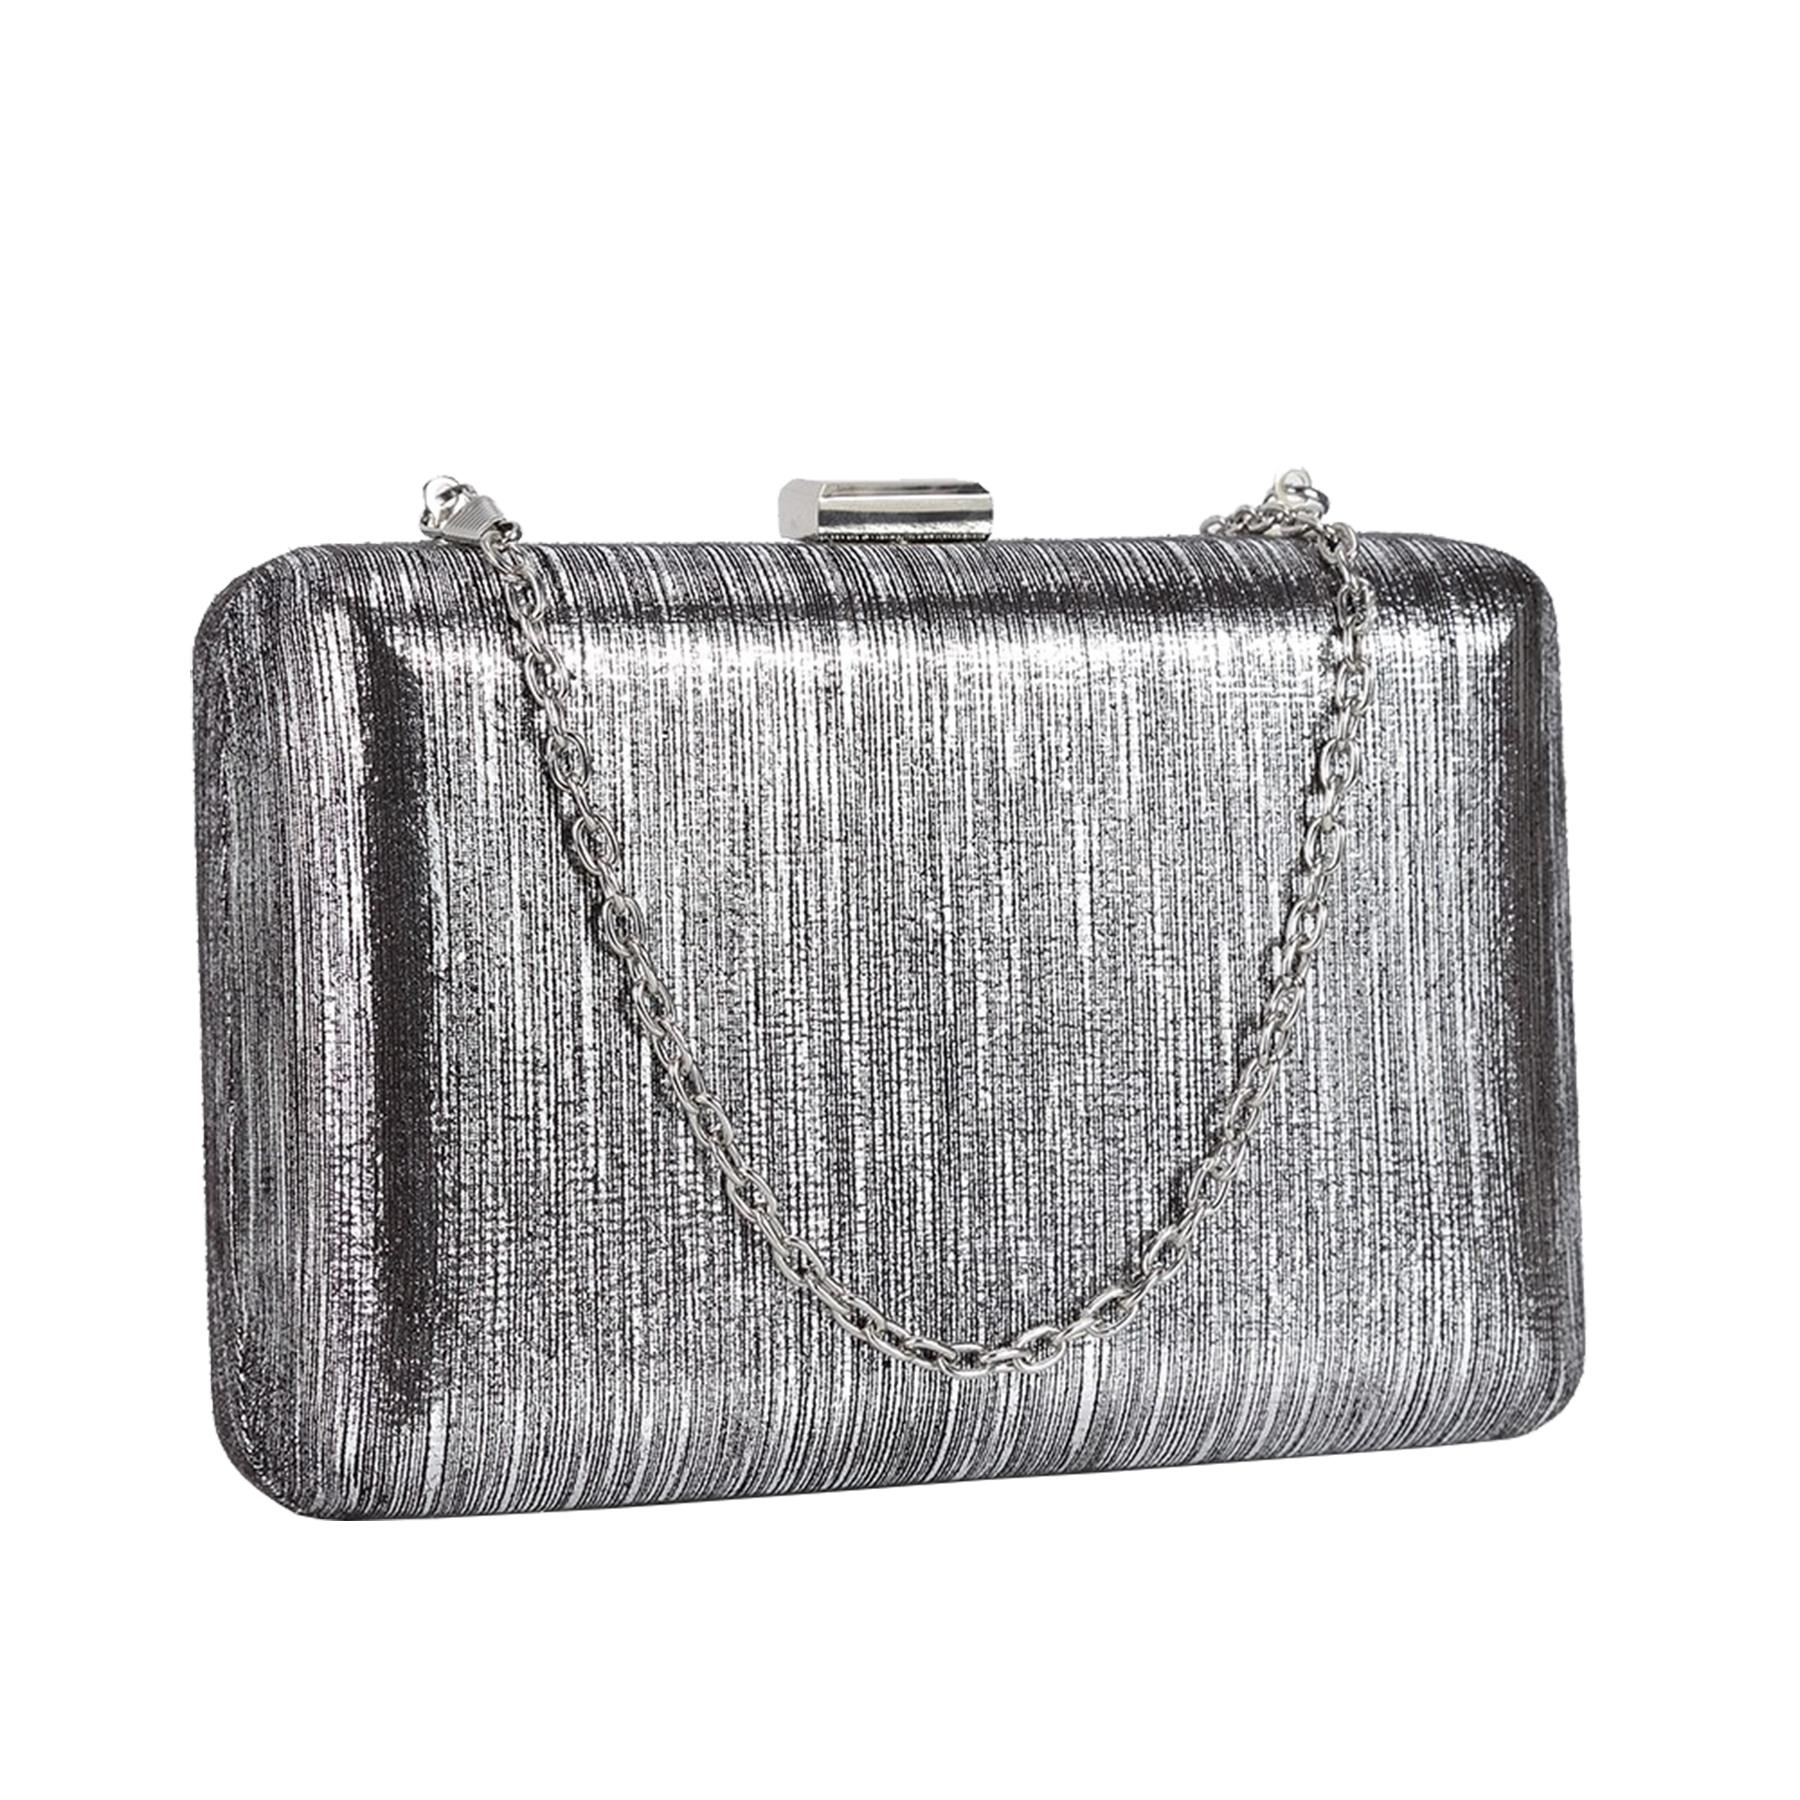 New-Ladies-Hard-Compact-Metallic-Effect-Faux-Leather-Party-Clutch-Bag thumbnail 12